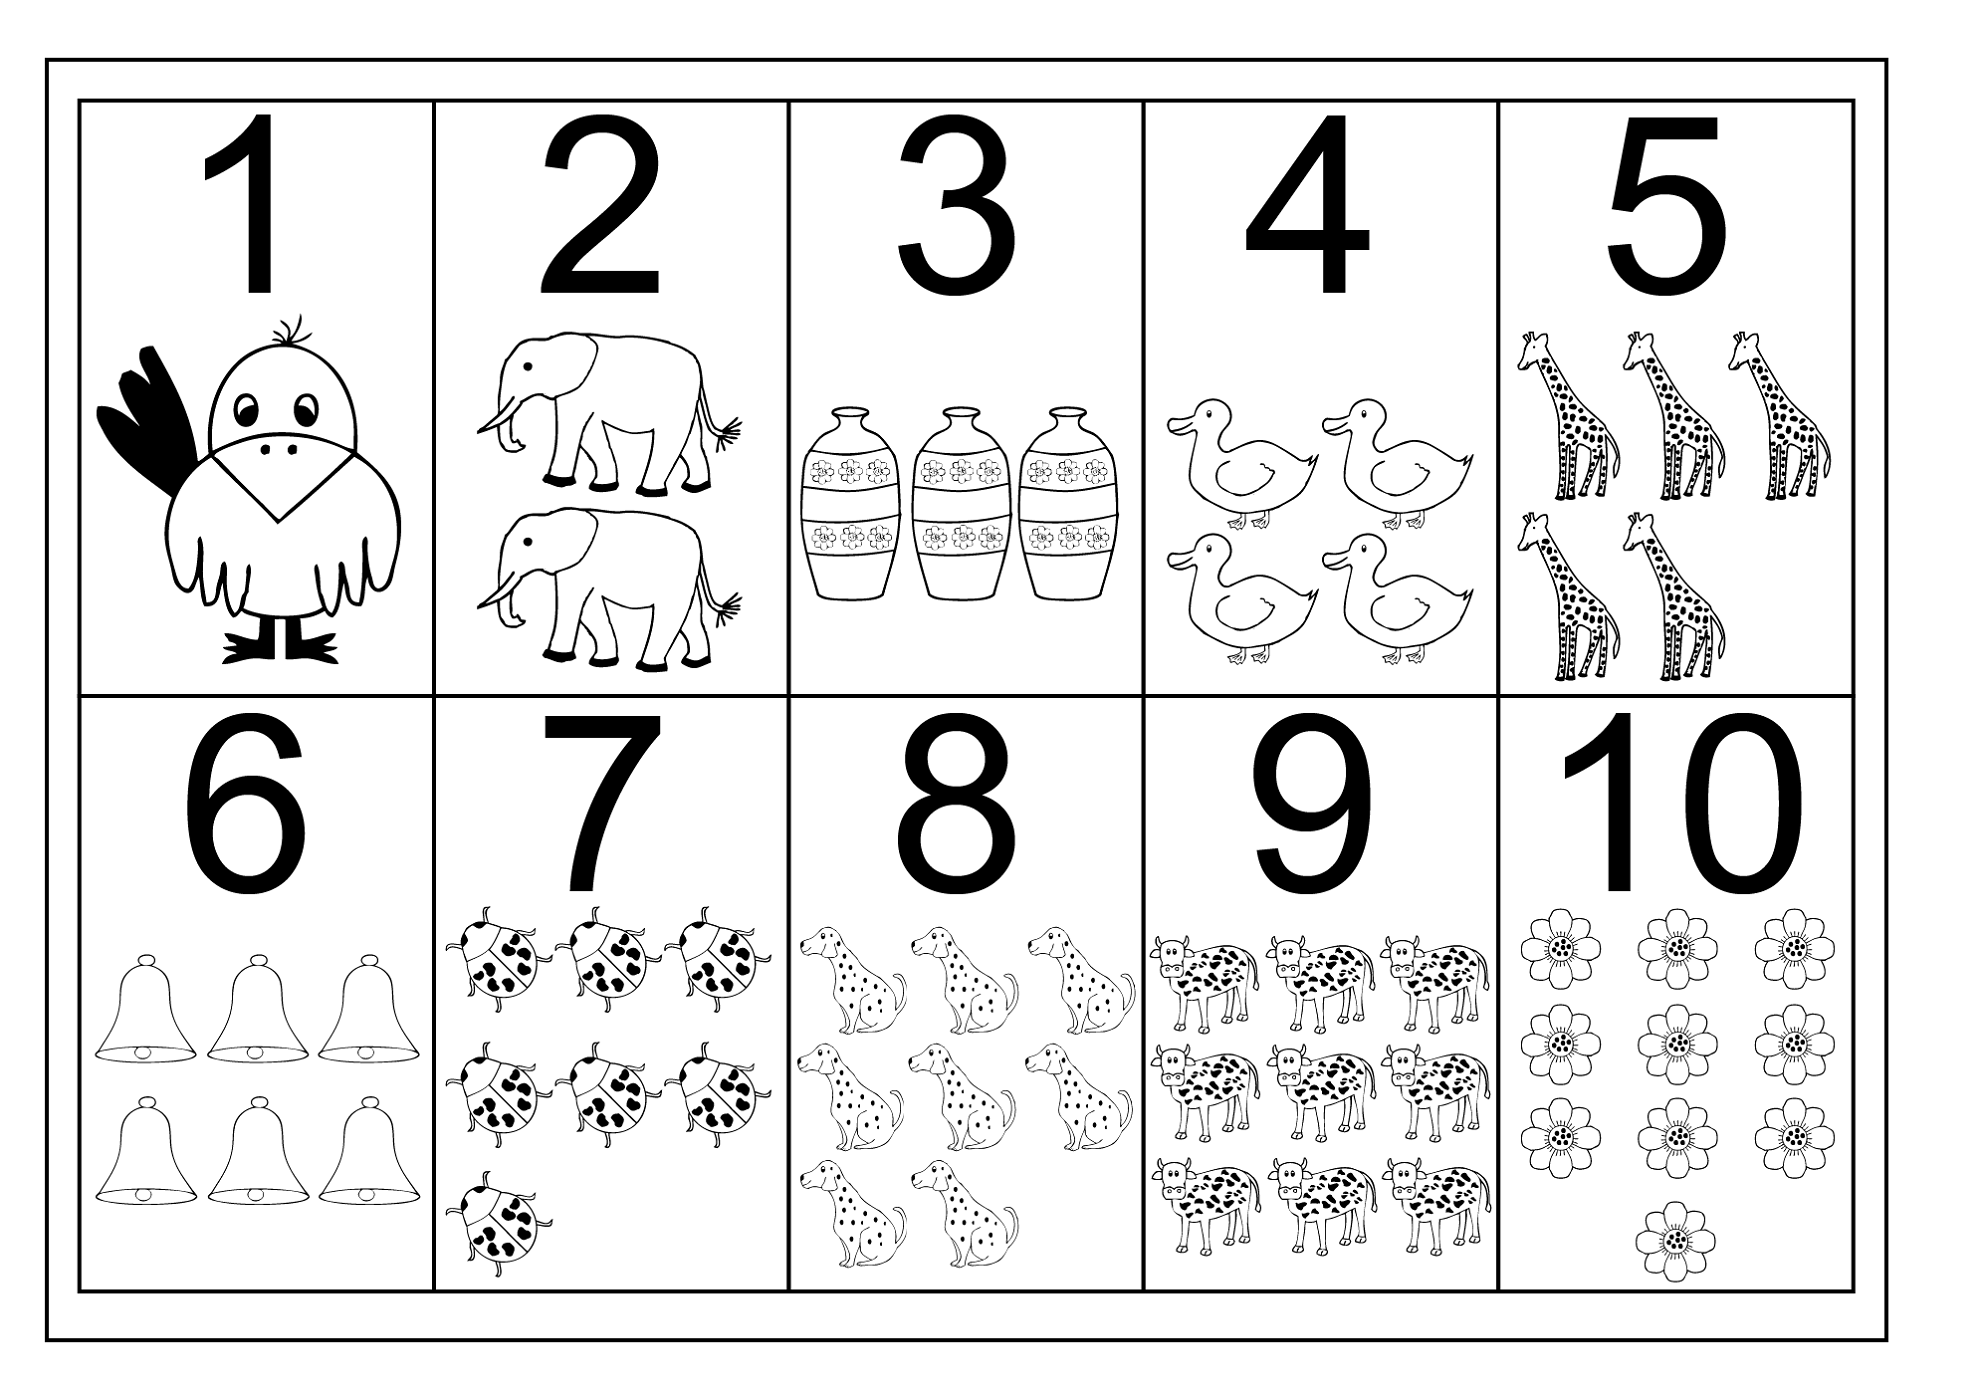 Printables Number Images 1-10 number 1 10 worksheets free activity shelter numbers with pictures